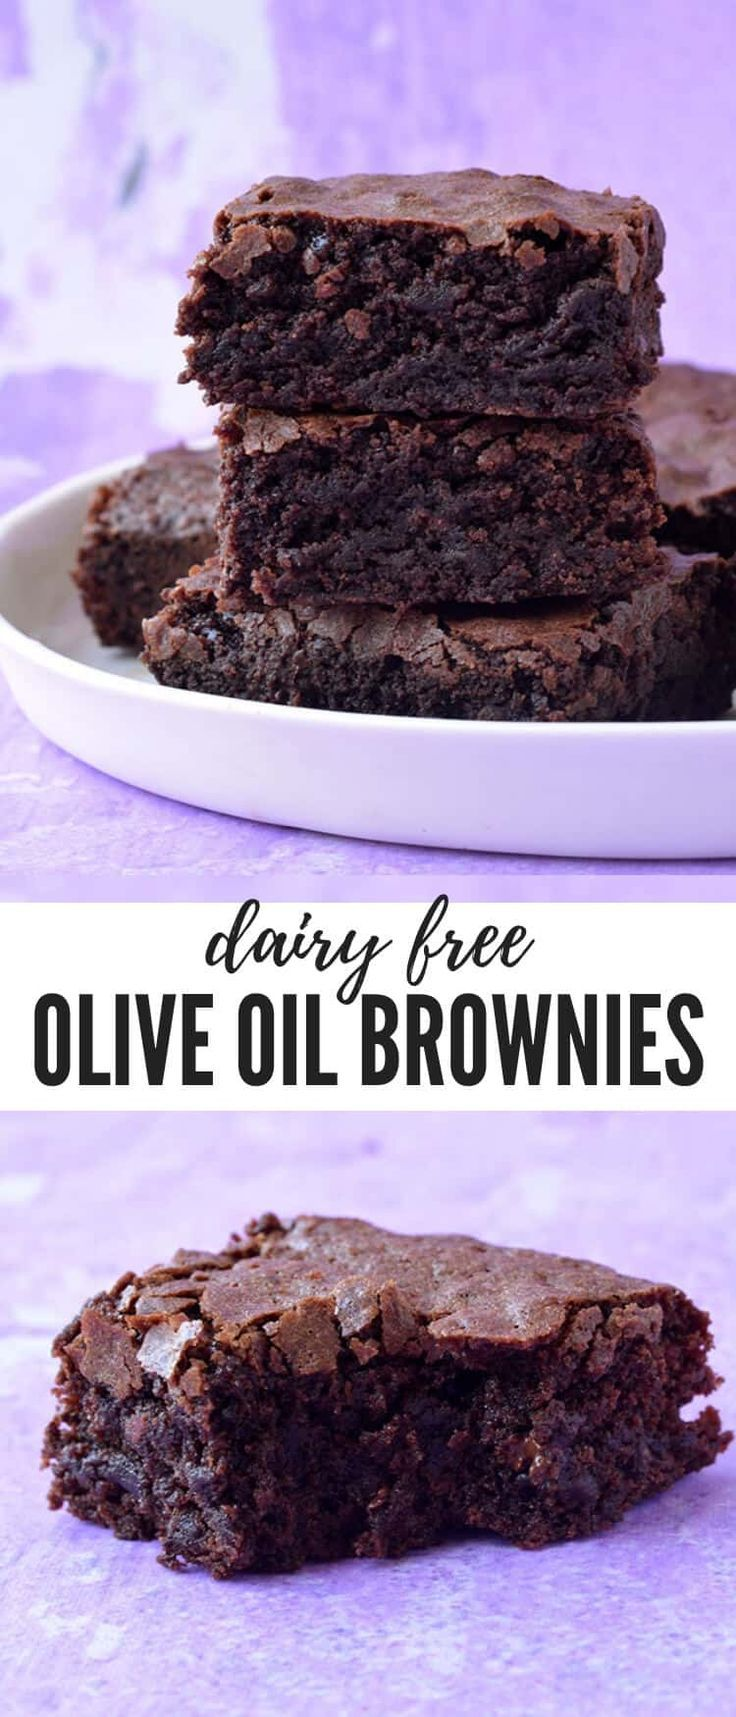 Olive Oil Brownies (Dairy Free) - Sweetest Menu